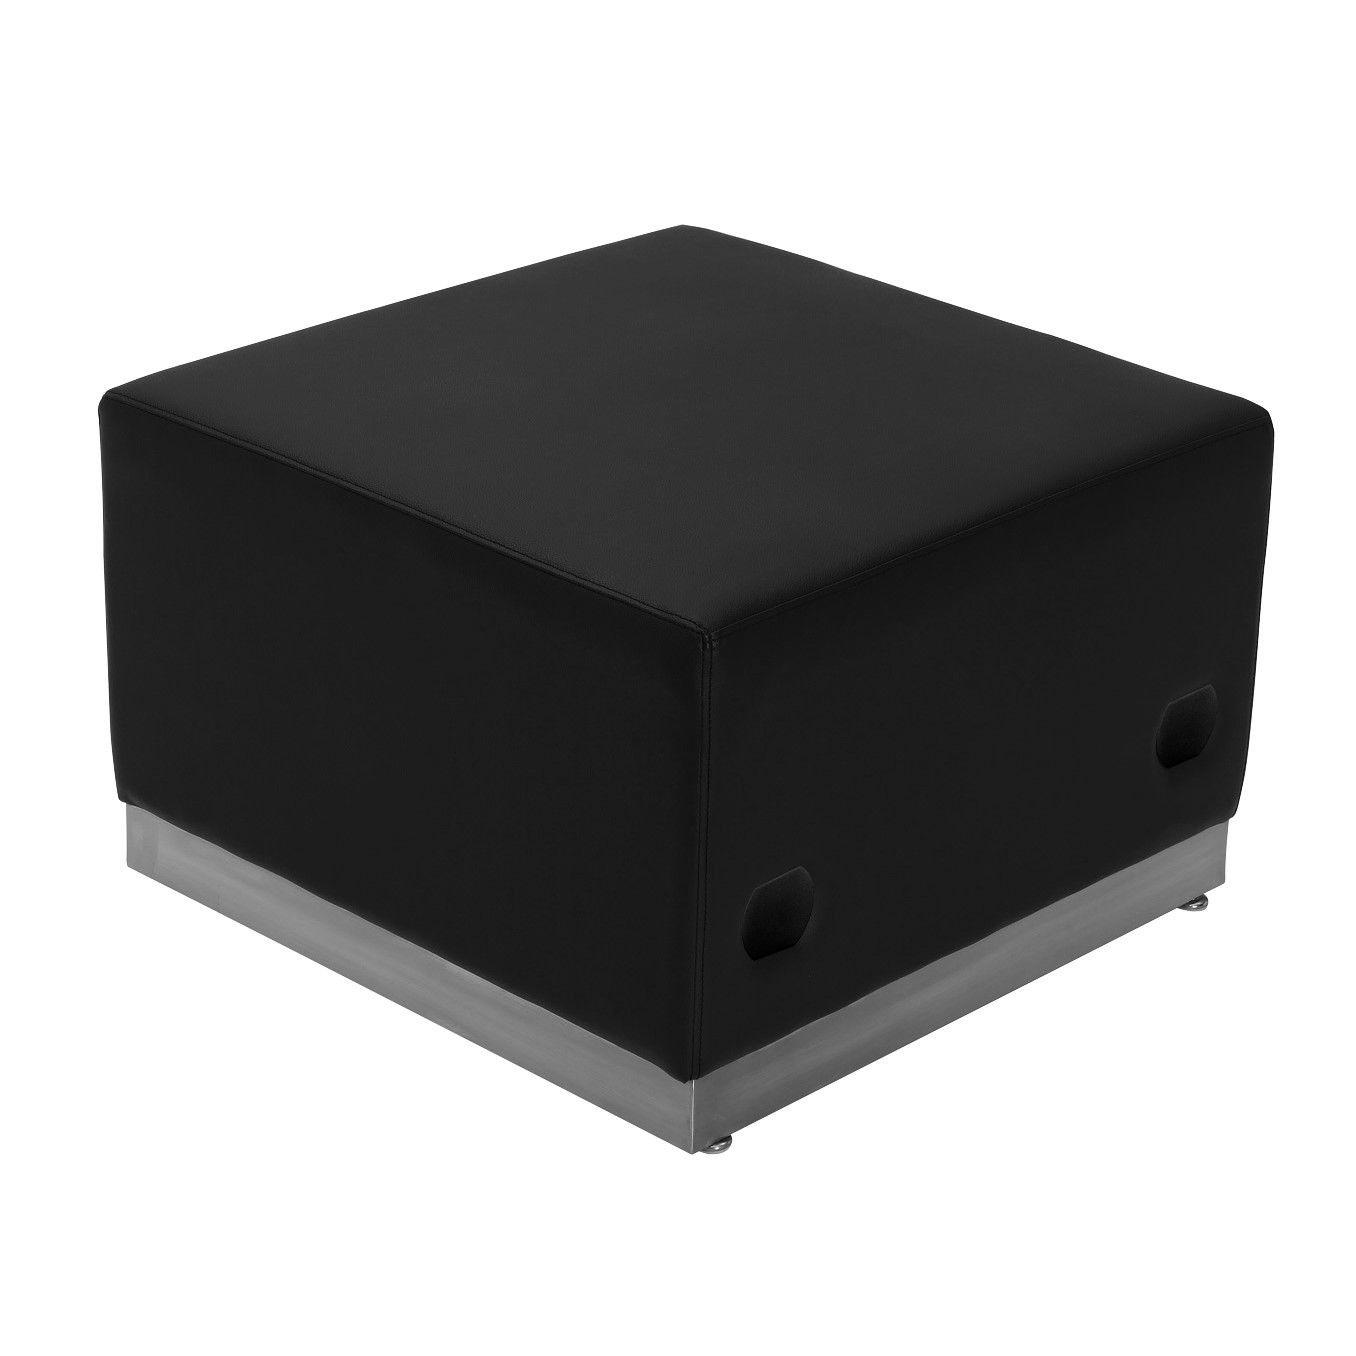 TOUGH ENOUGH Alon Series Black LeatherSoft Ottoman with Brushed Stainless Steel Base